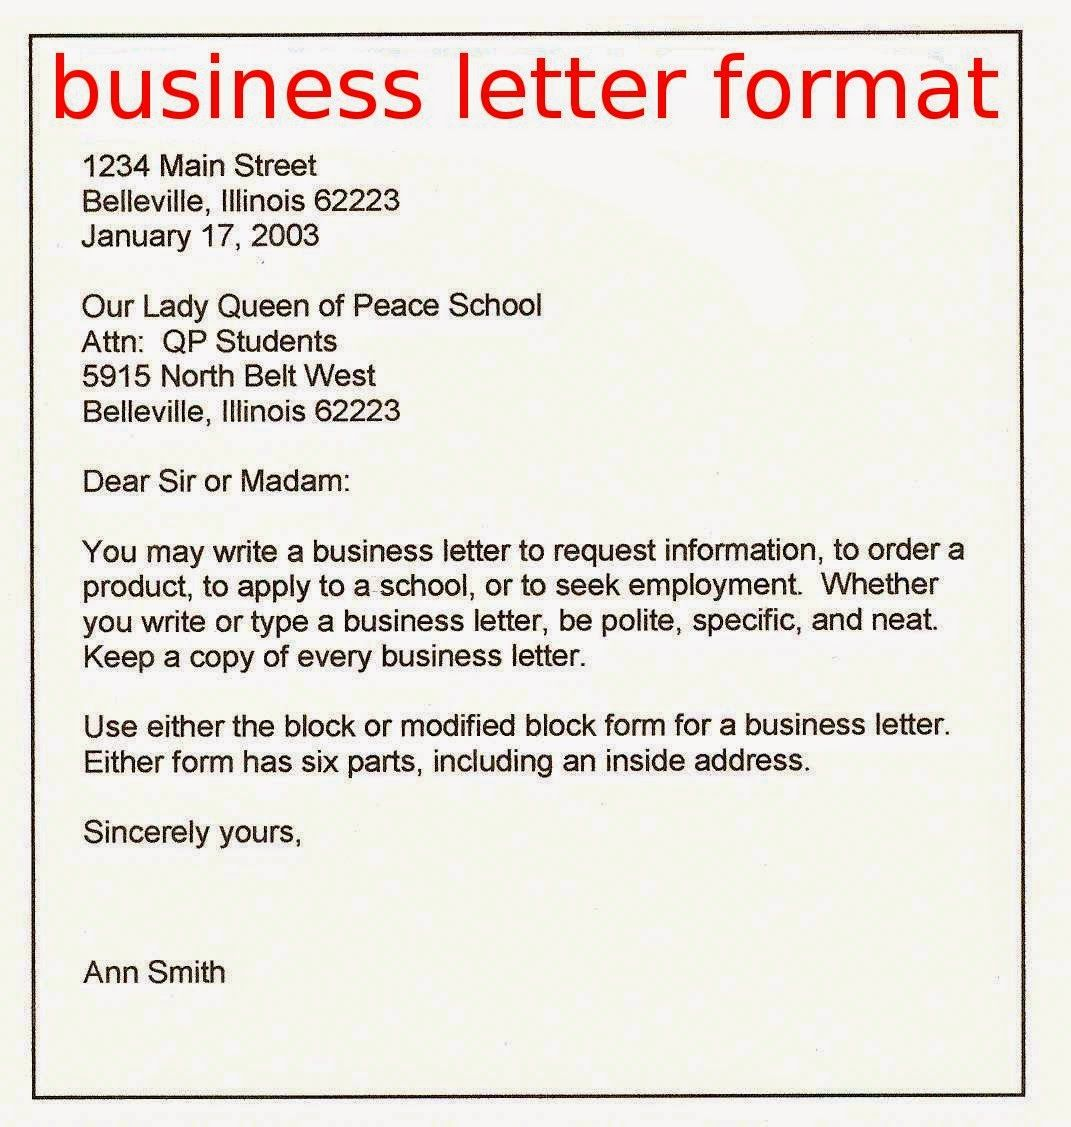 writing business letters format (With images) Business